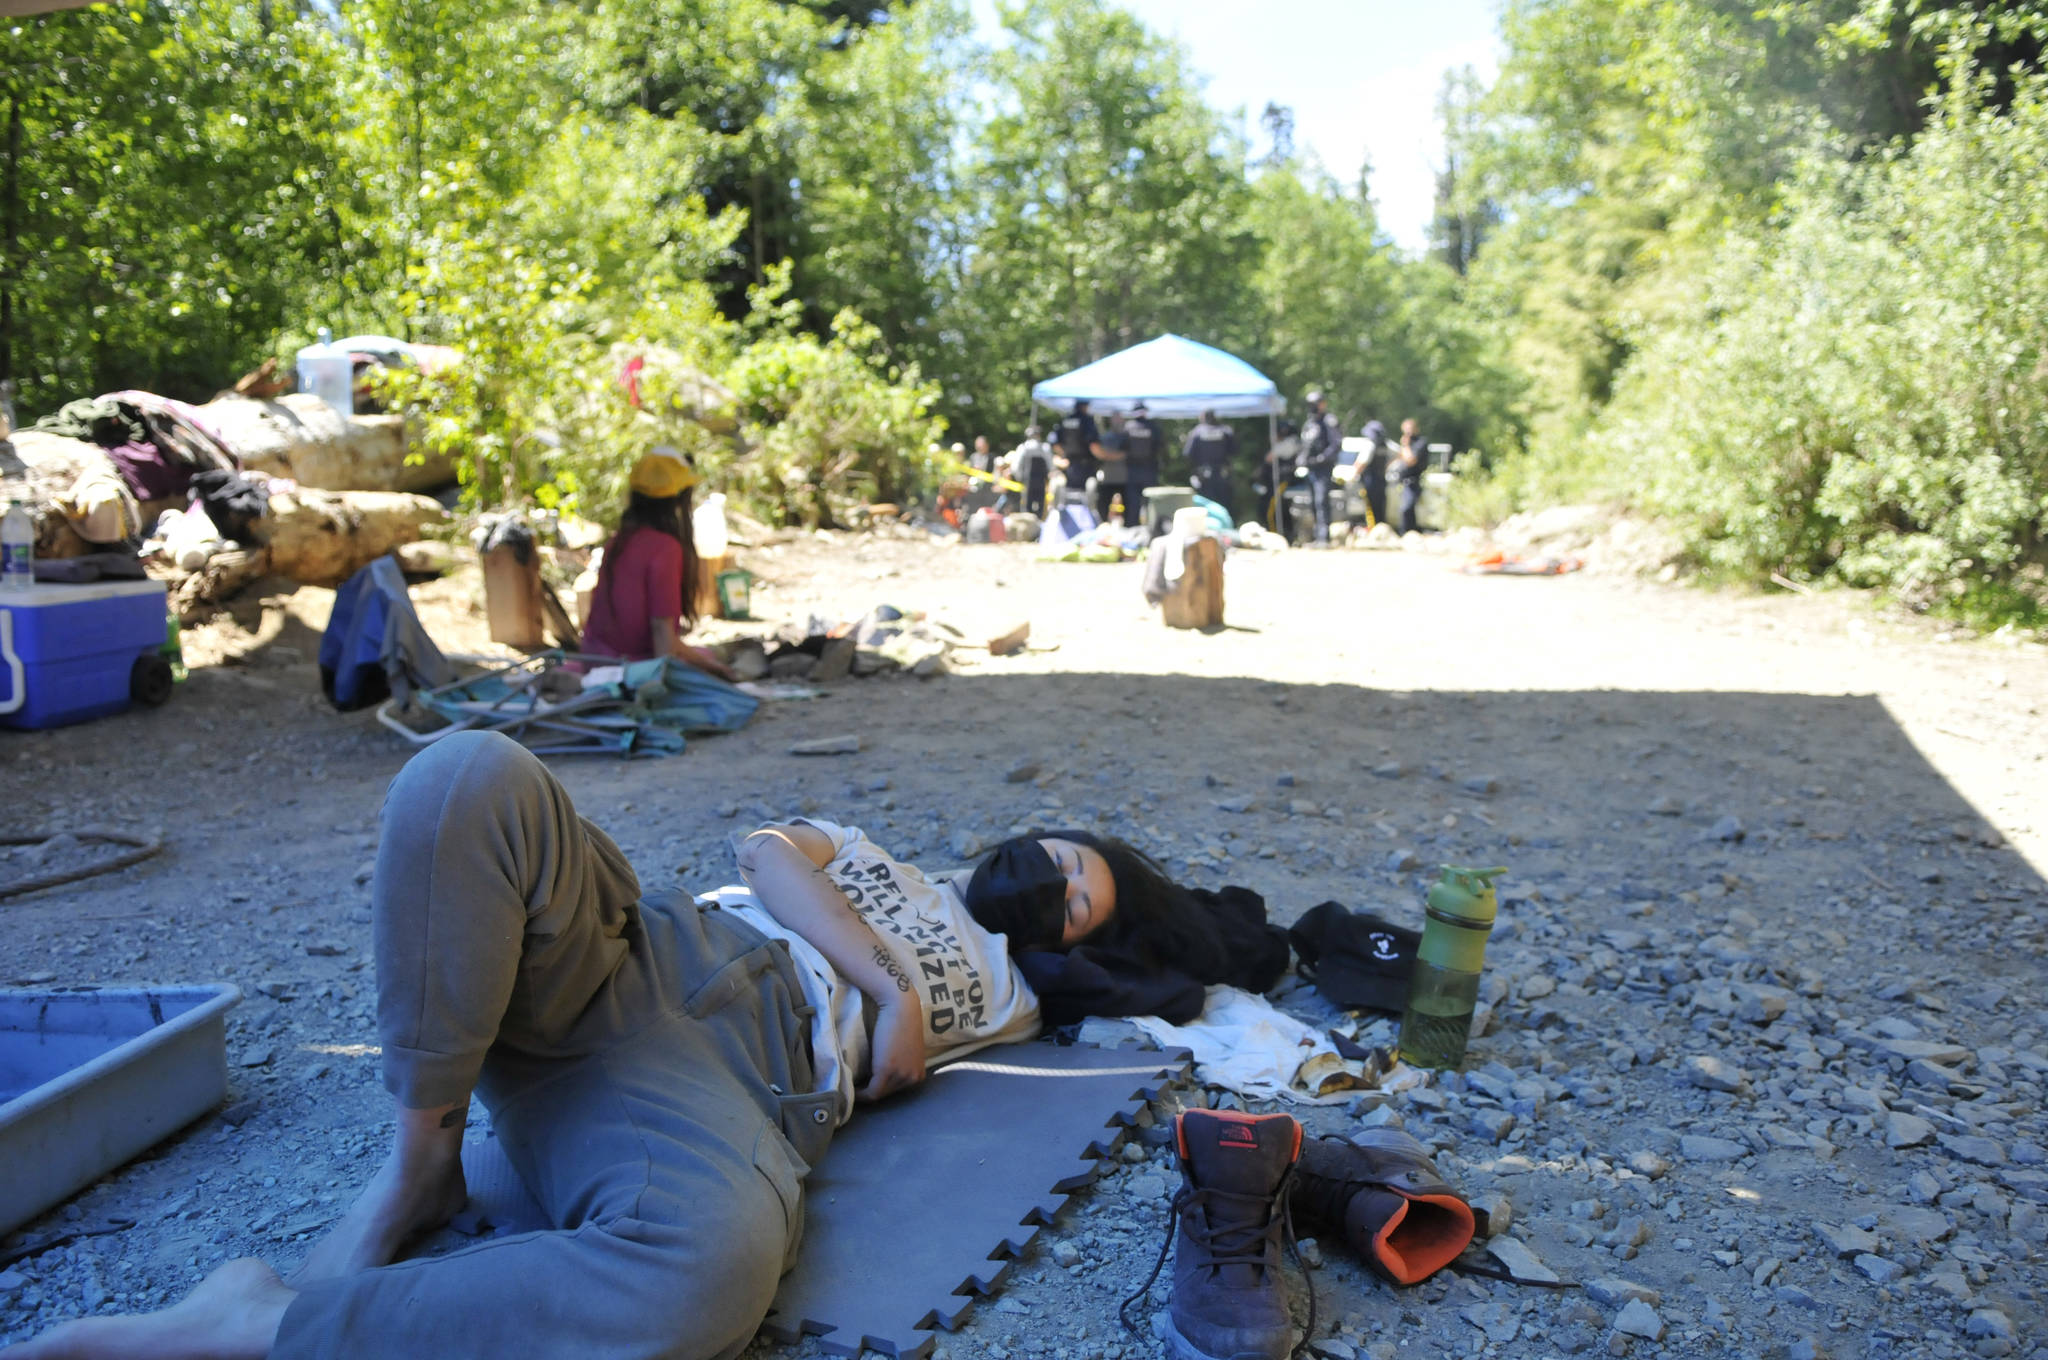 A protester lies in a sleeping dragon hold at the Waterfall blockade in June in the Fairy Creek Watershed, while police confer in the background. (Zoe Ducklow/News Staff)